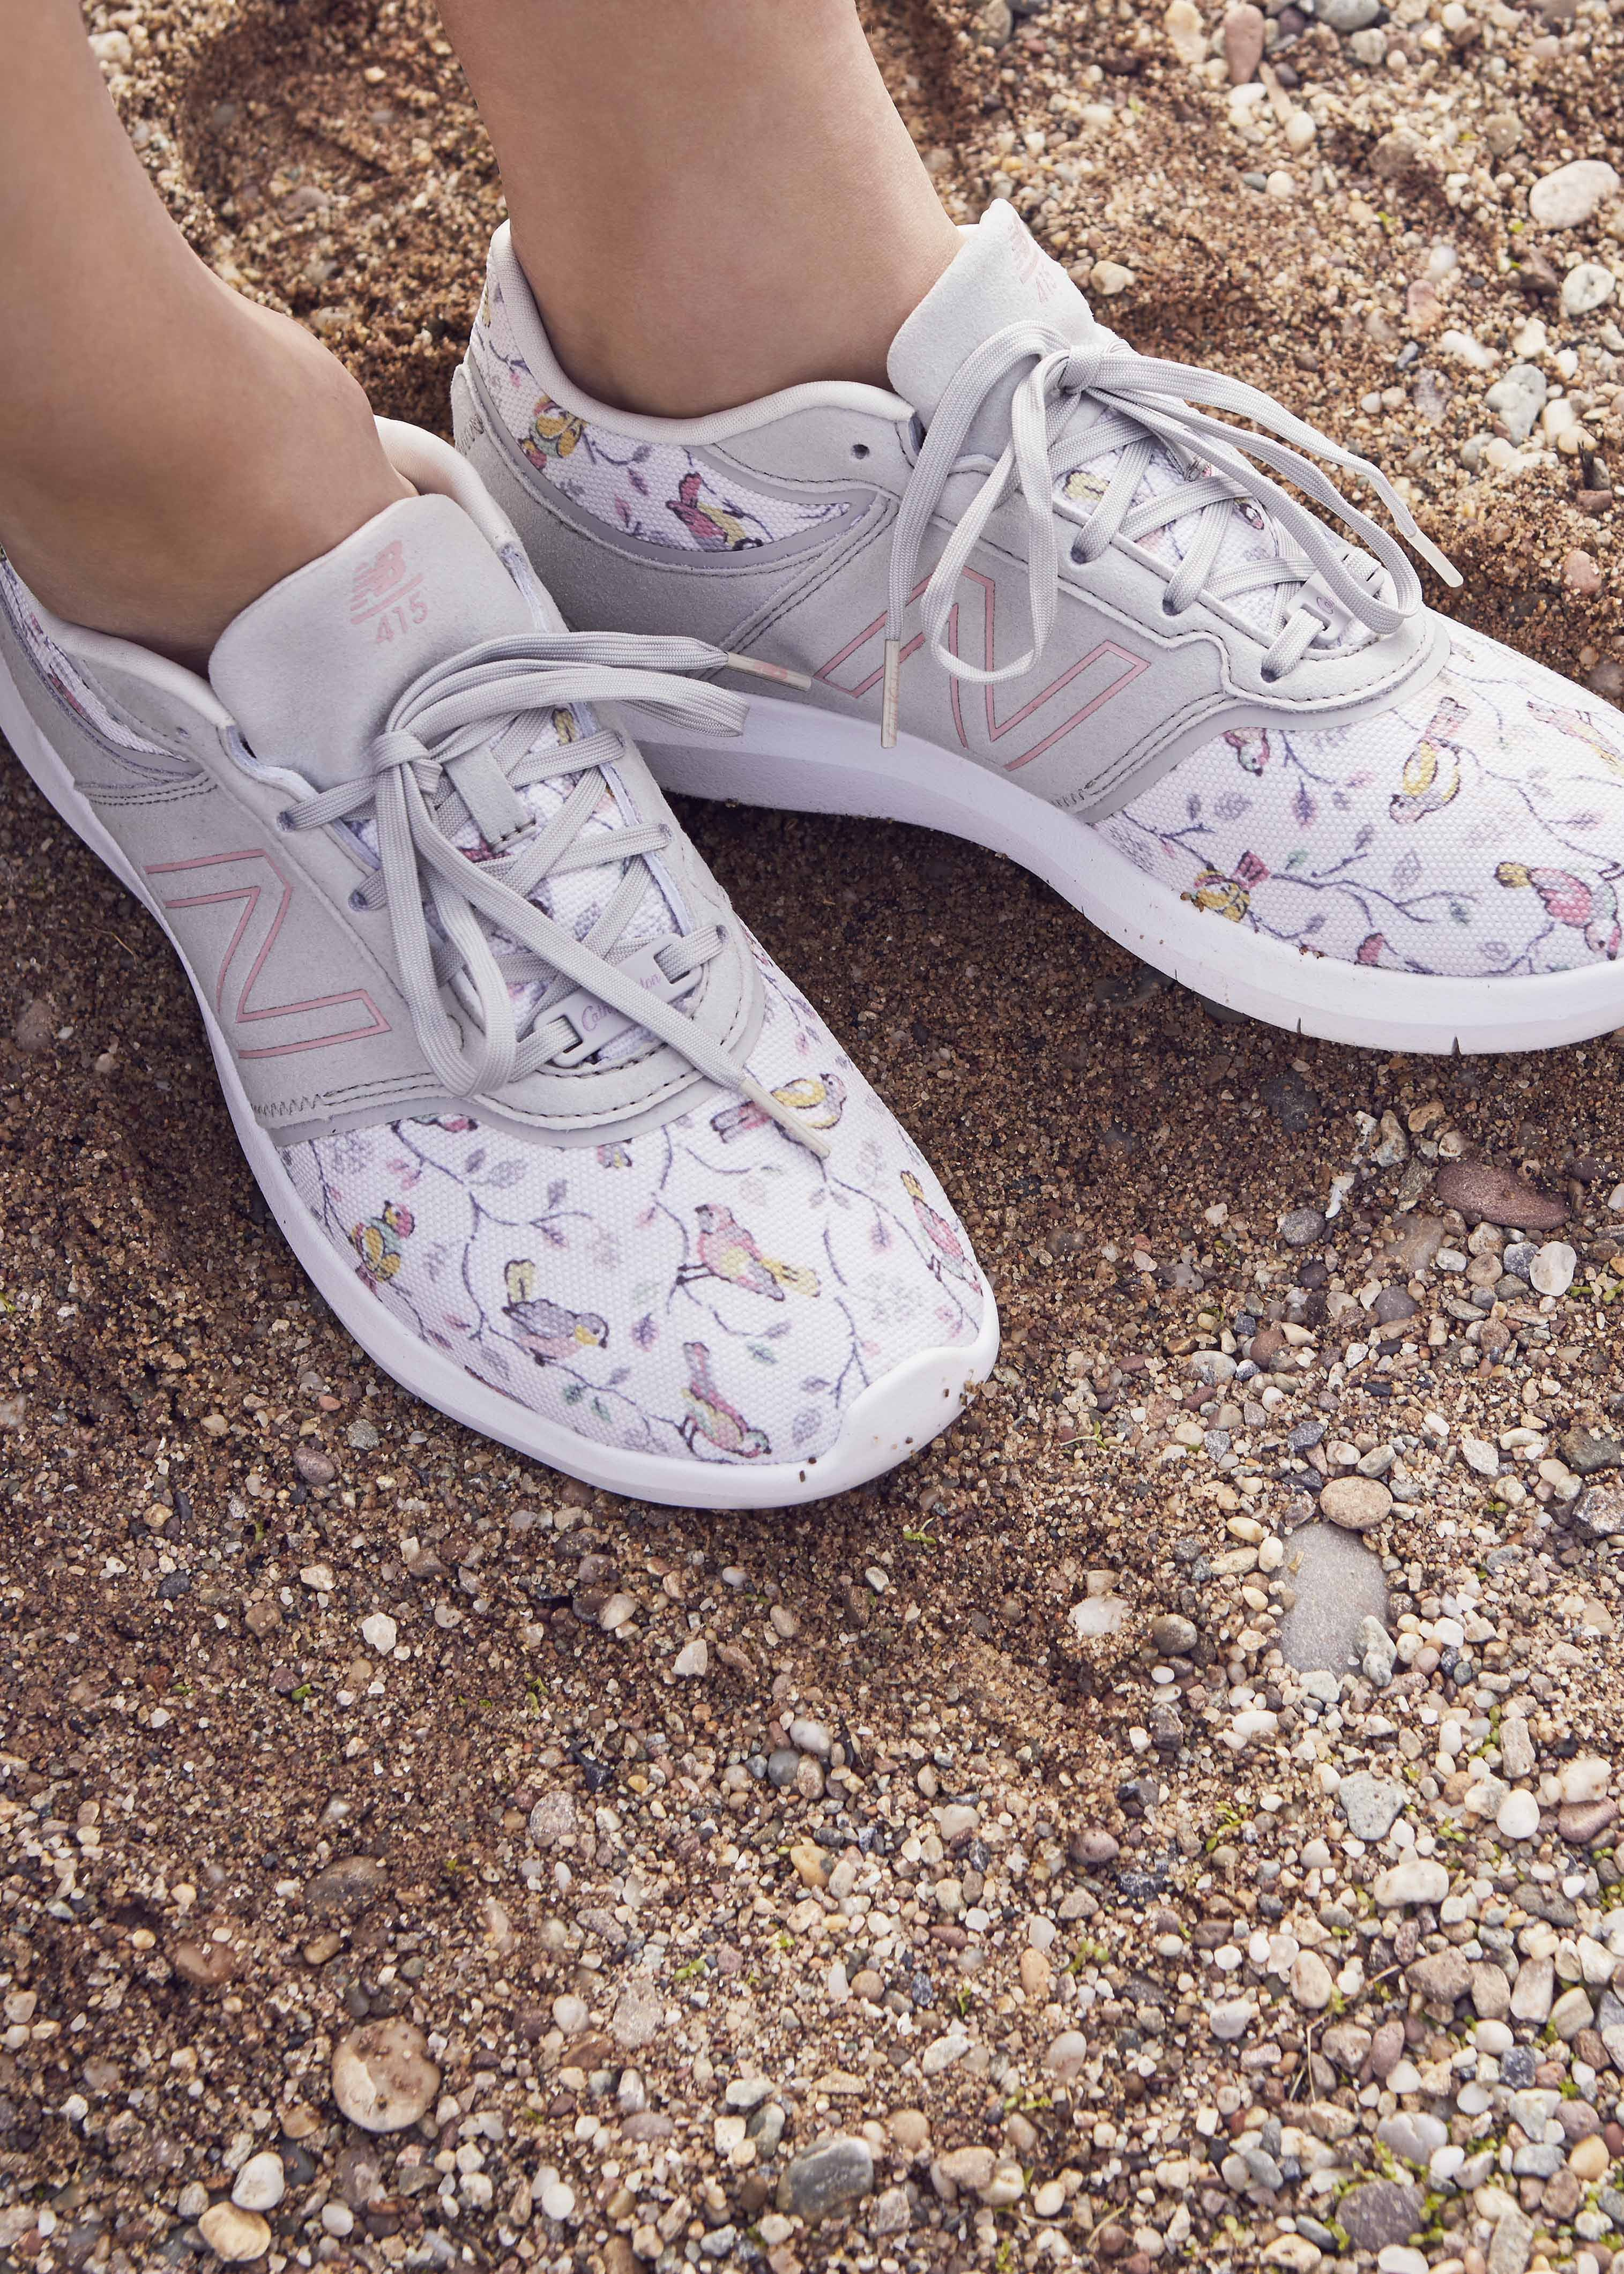 sports shoes 94b77 fcf87 We ve taken a New Balance iconic 415 style and blended it with our delicate  classic Cath Kidston print Little Birds, a soft grey print covered in small  ...